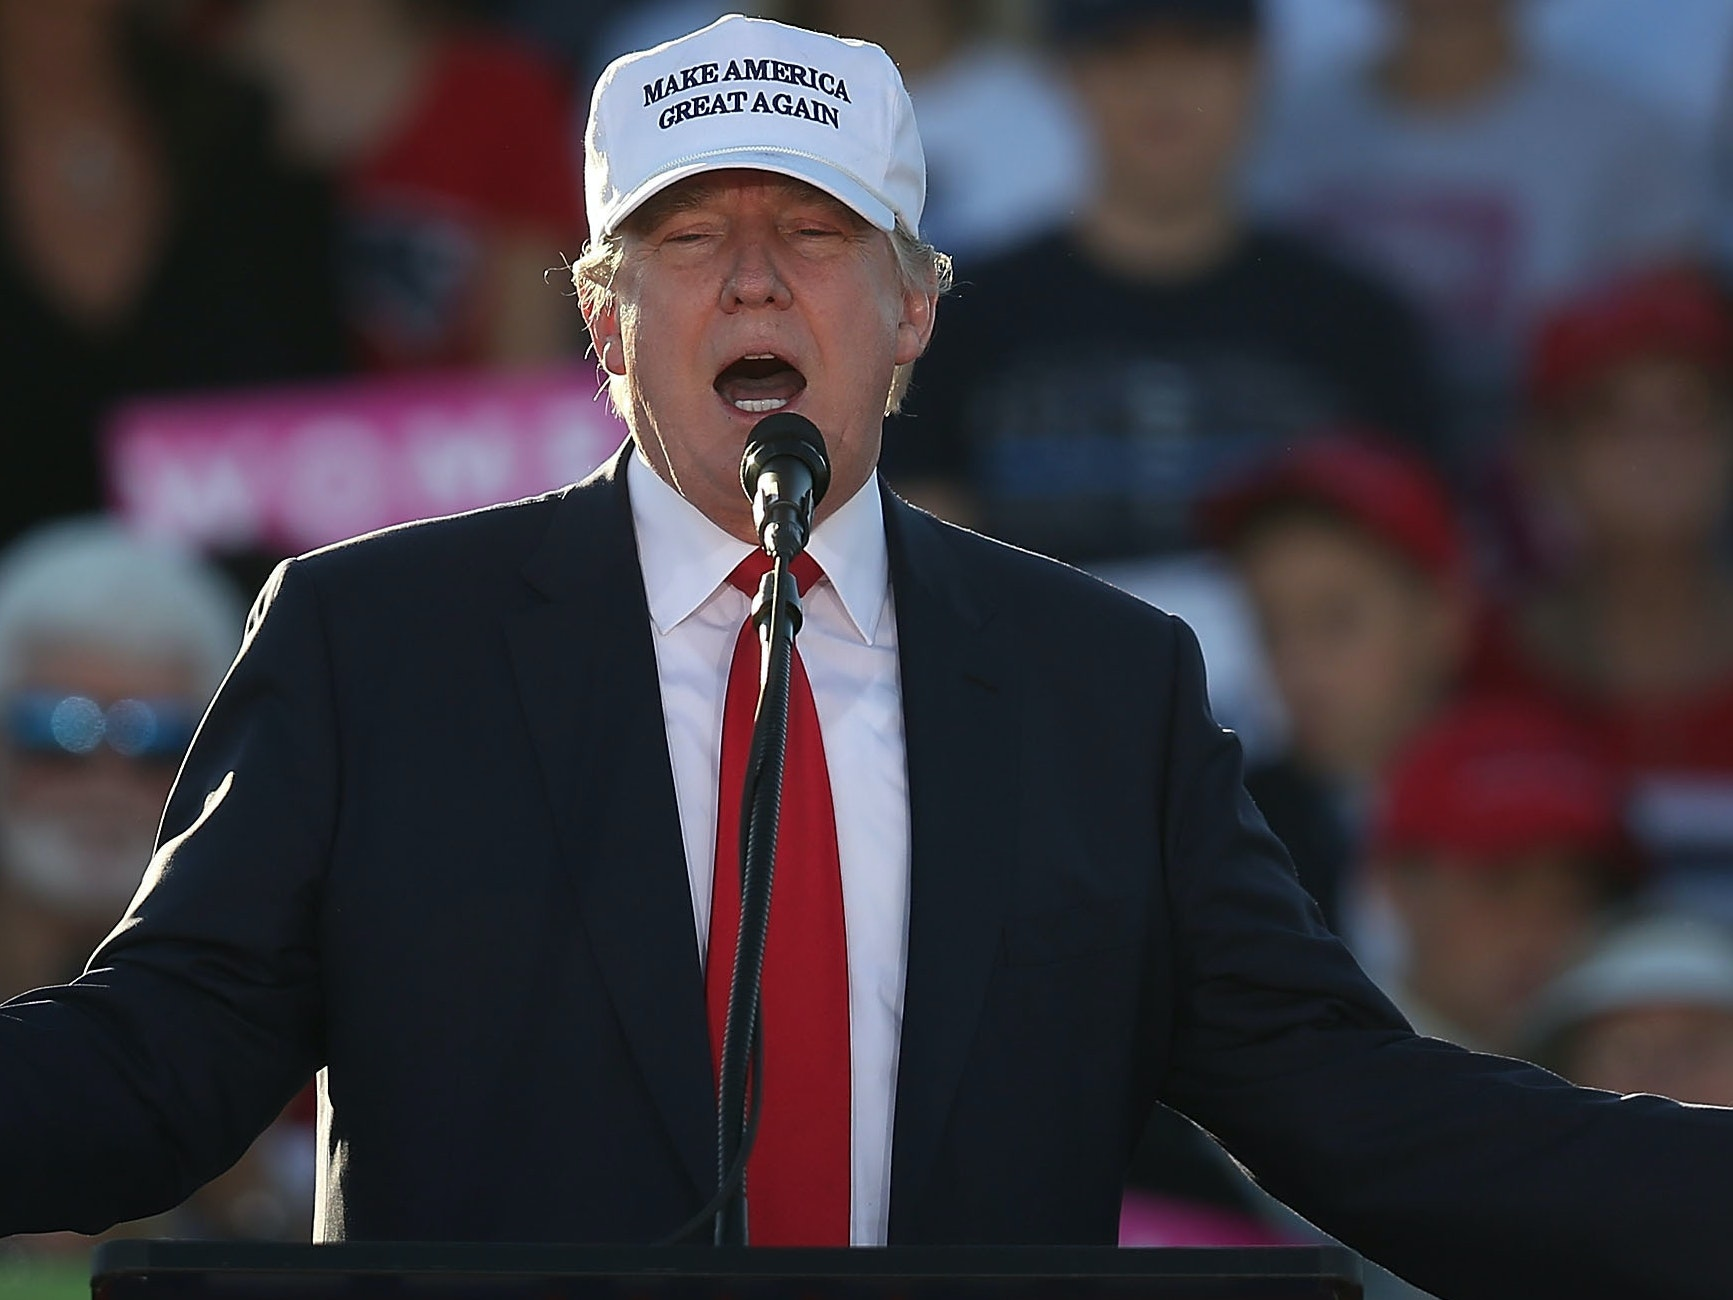 Republican presidential candidate Donald Trump speaks during a campaign rally at the Collier County Fairgrounds on October 23, 2016 in Naples, Florida. Early voting in Florida in the presidential election begins October 24. Trump will not be visiting Kennedy Space Center as planned.